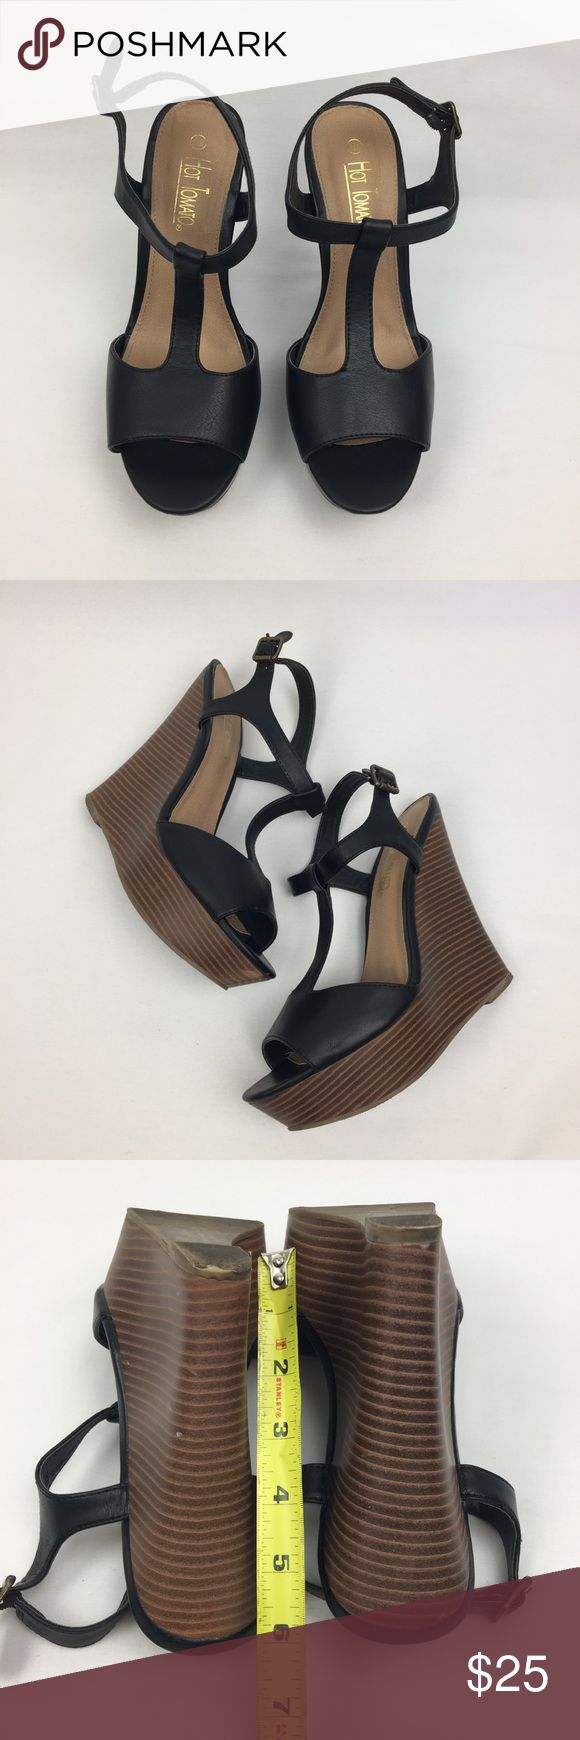 Hot tomato black Wedge Sandal 9.5 M Normal wear Hot Tomato Shoes Wedges